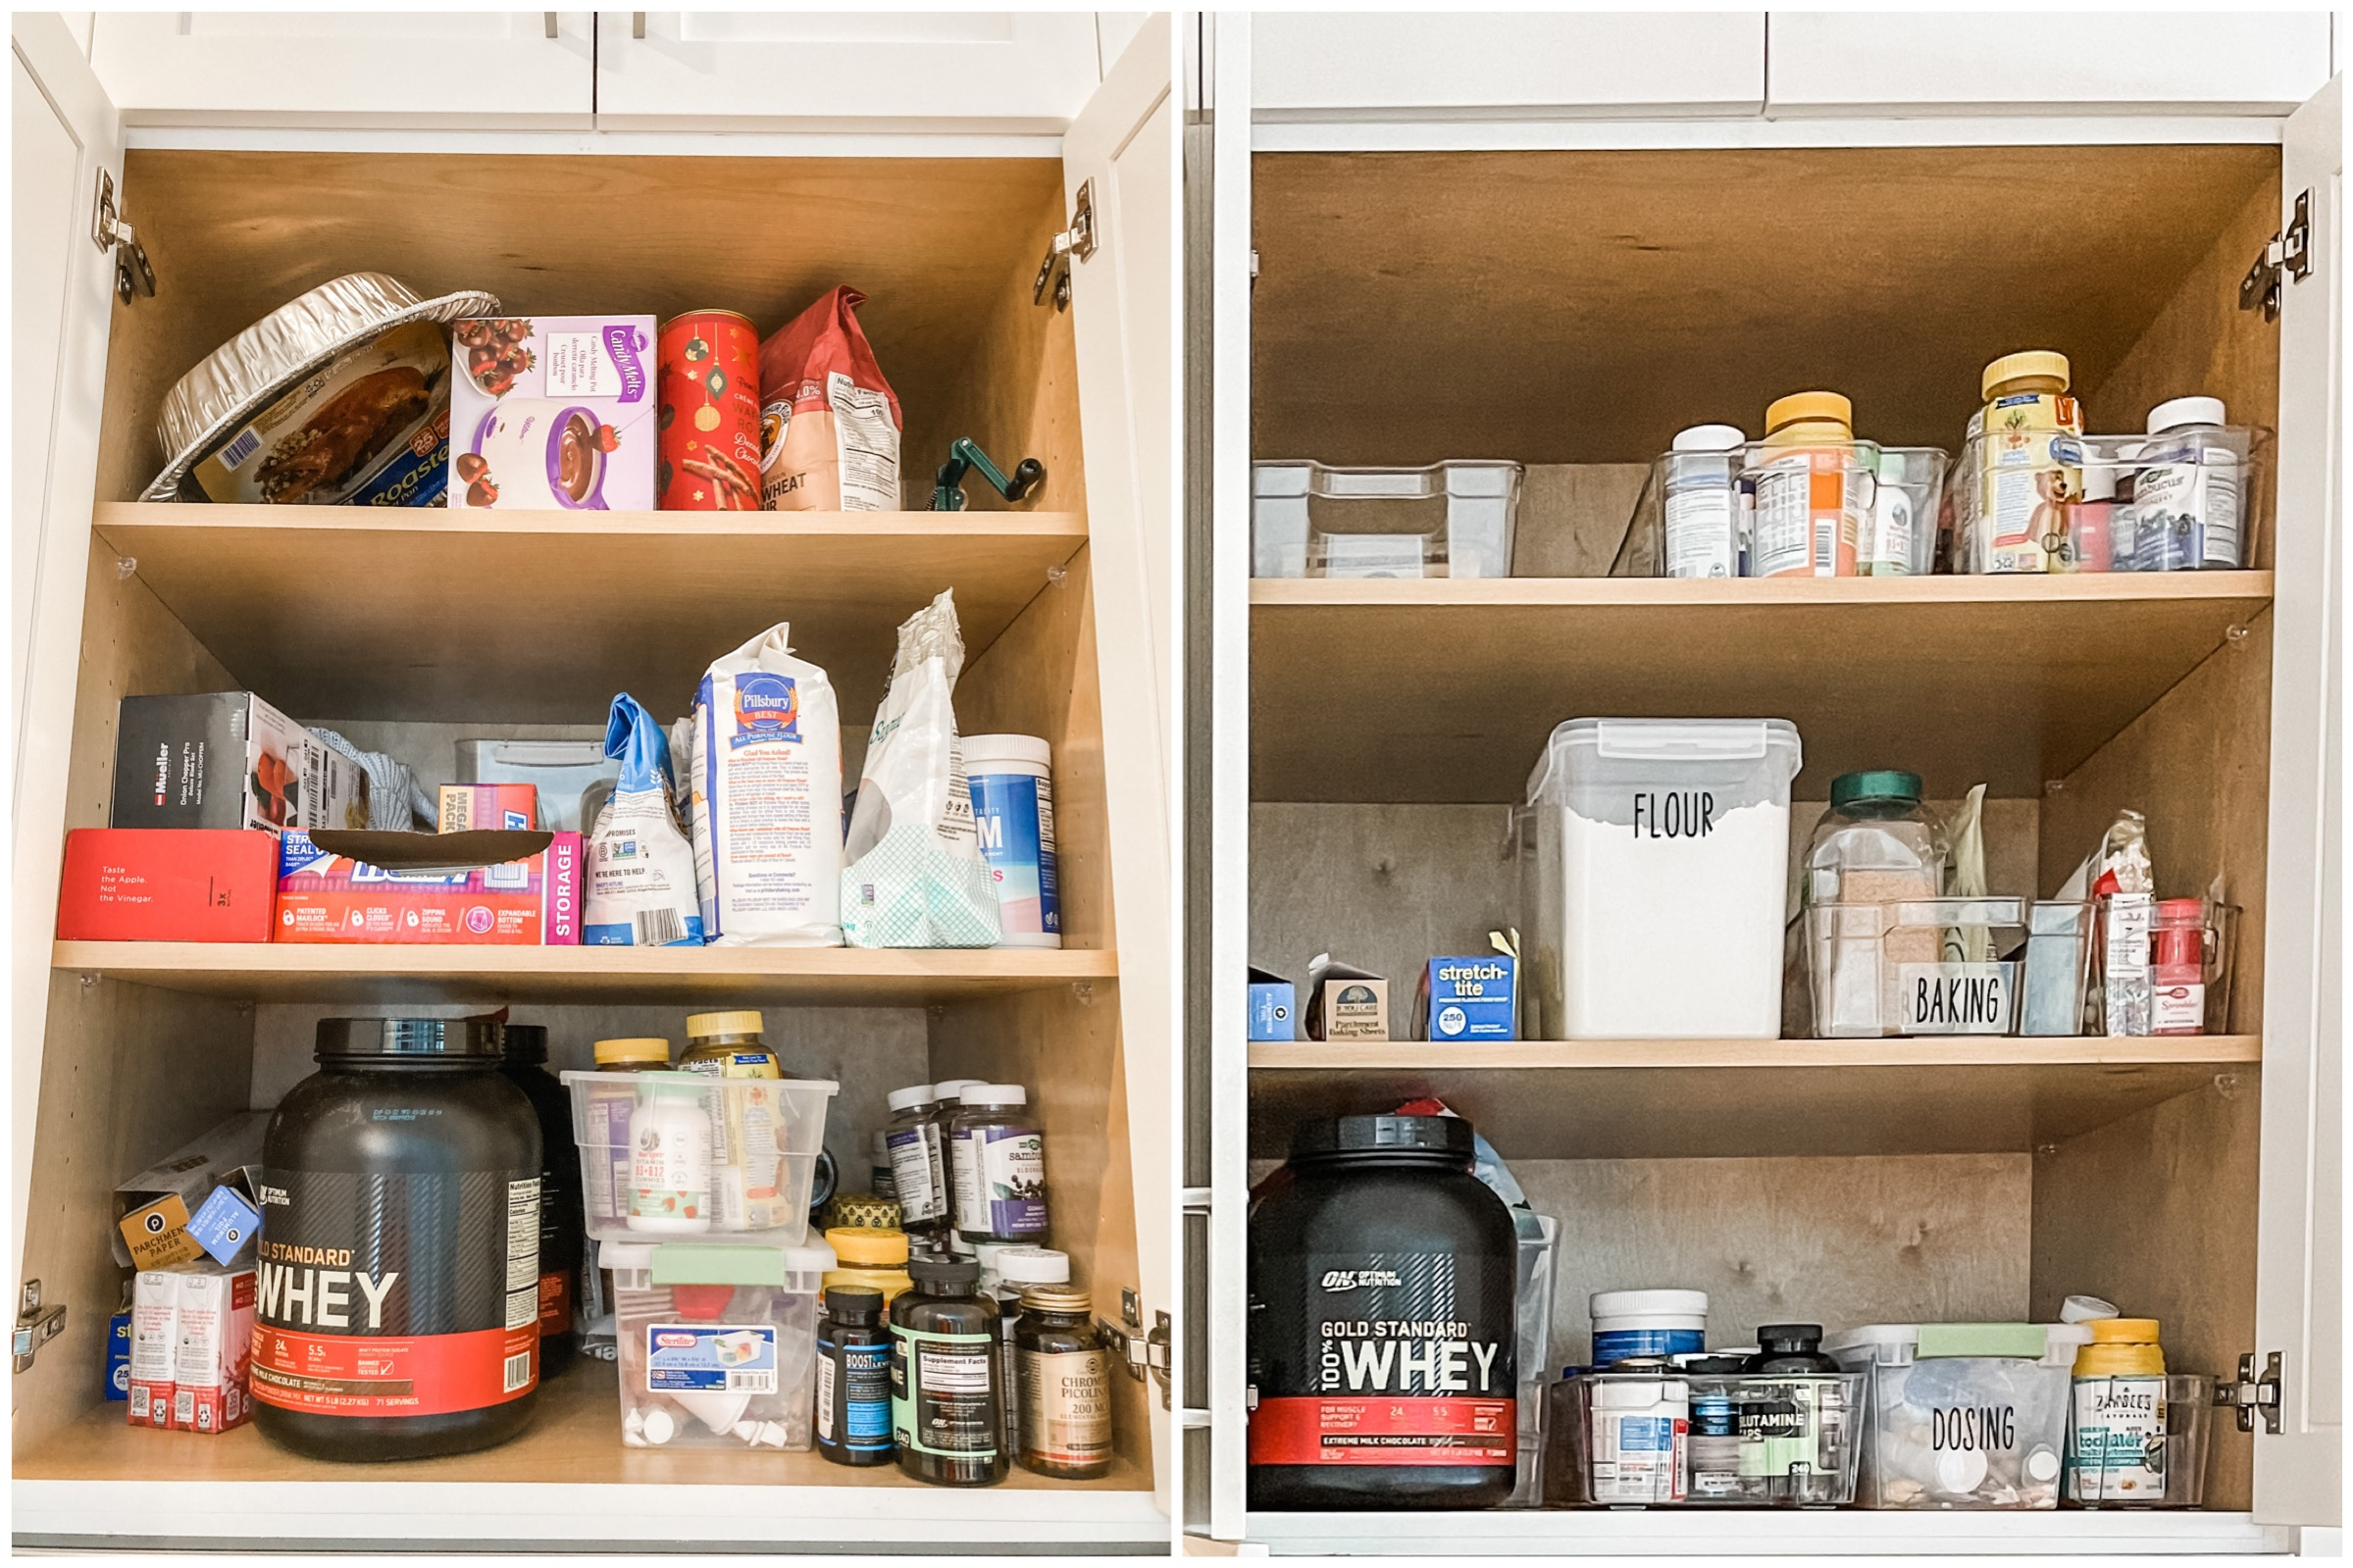 Pantry Organization In 4 Easy Steps With Expert Tampa Bay Organizer, Barbara Proia / You Organized, pantry organizer bins, pantry organization goals, pantry organization containers, pantry organizing ideas, pantry organization categories, pantry organization kid snacks